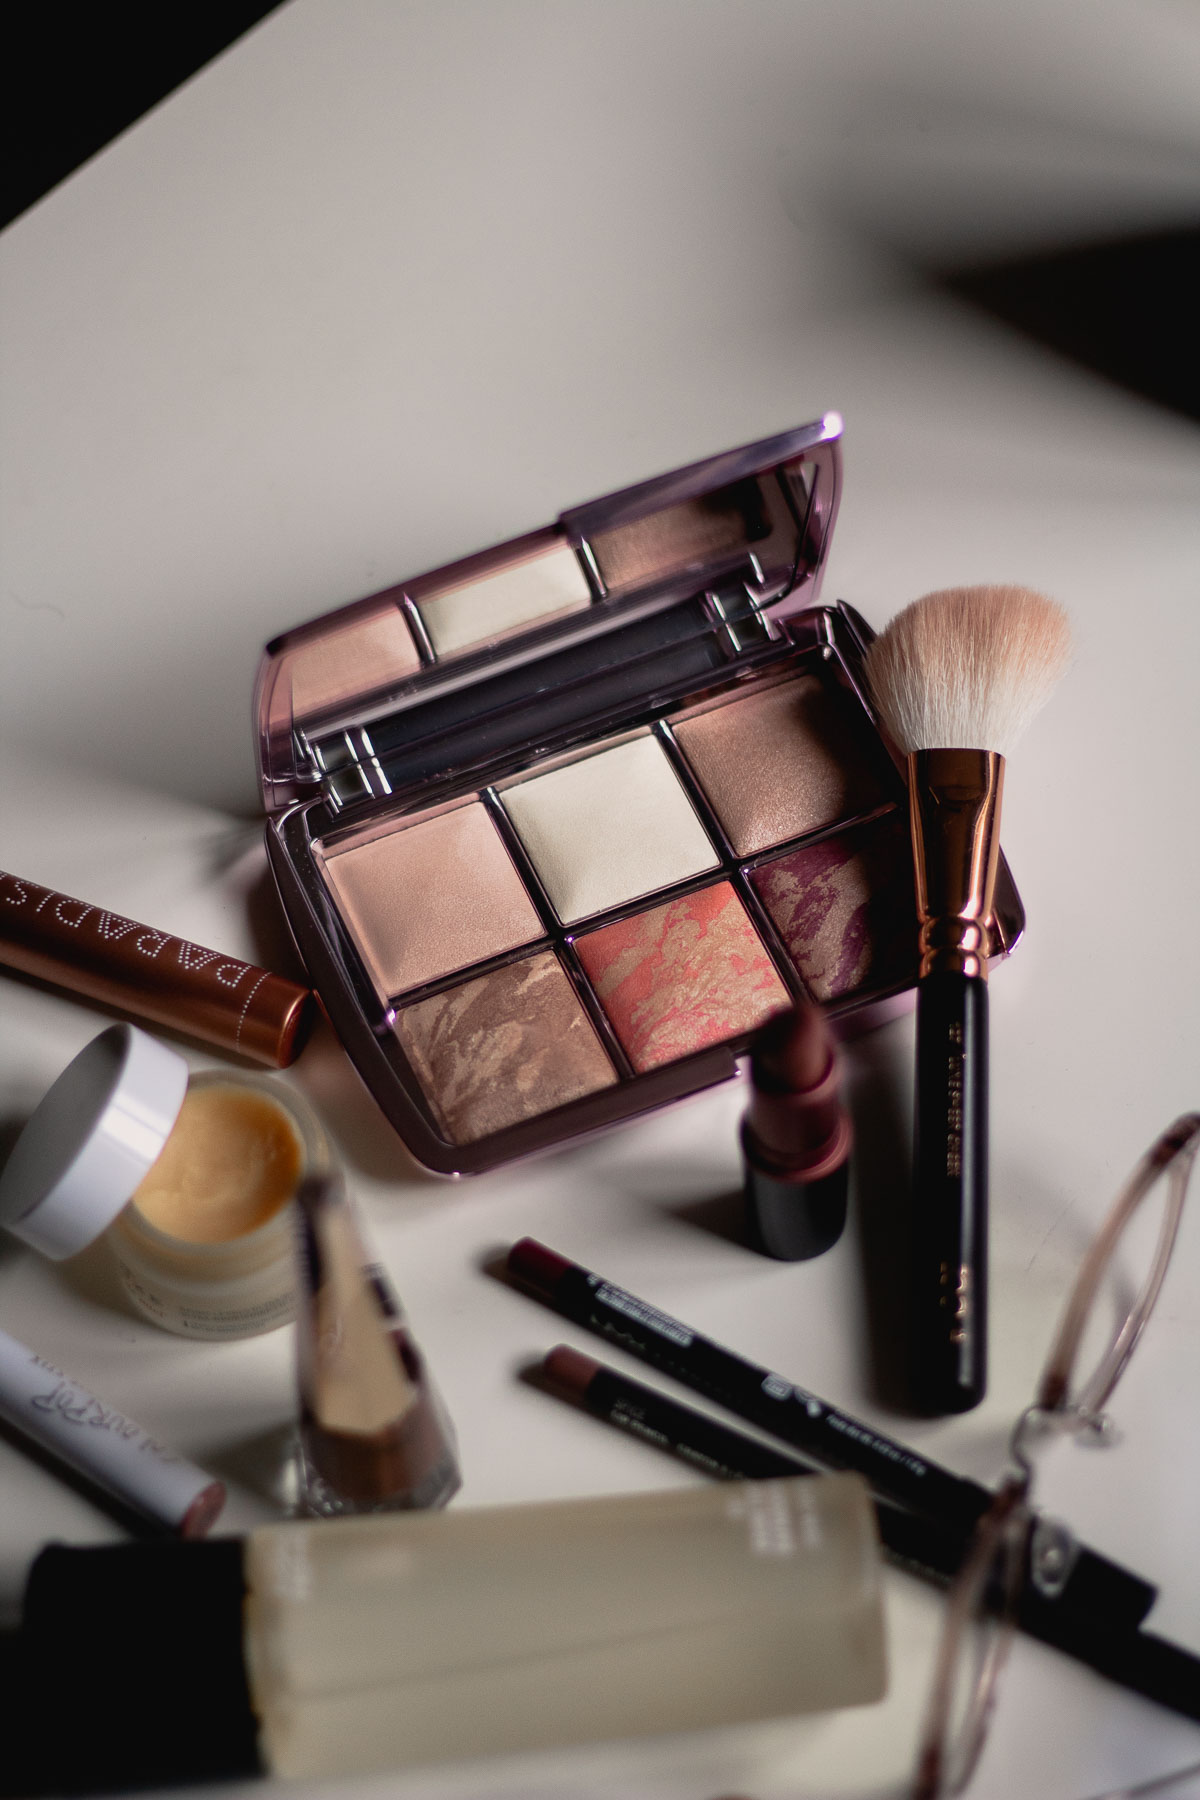 The Hourglass Ambient Lighting Edit Volume 4